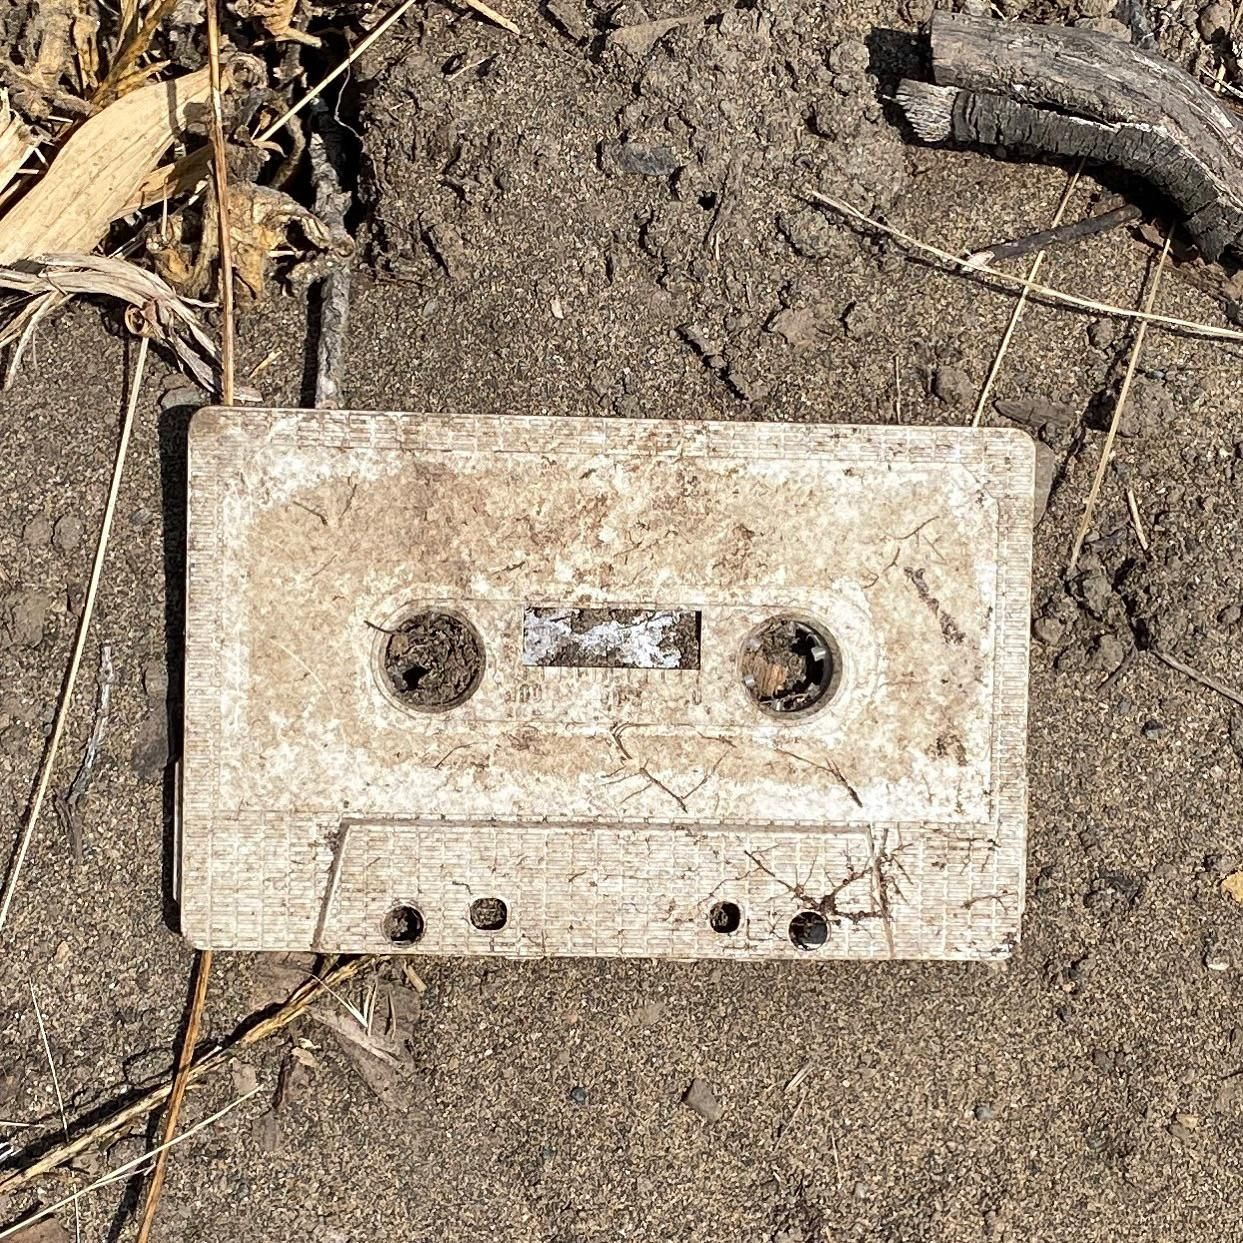 I found a very rare fossil on my walk today.